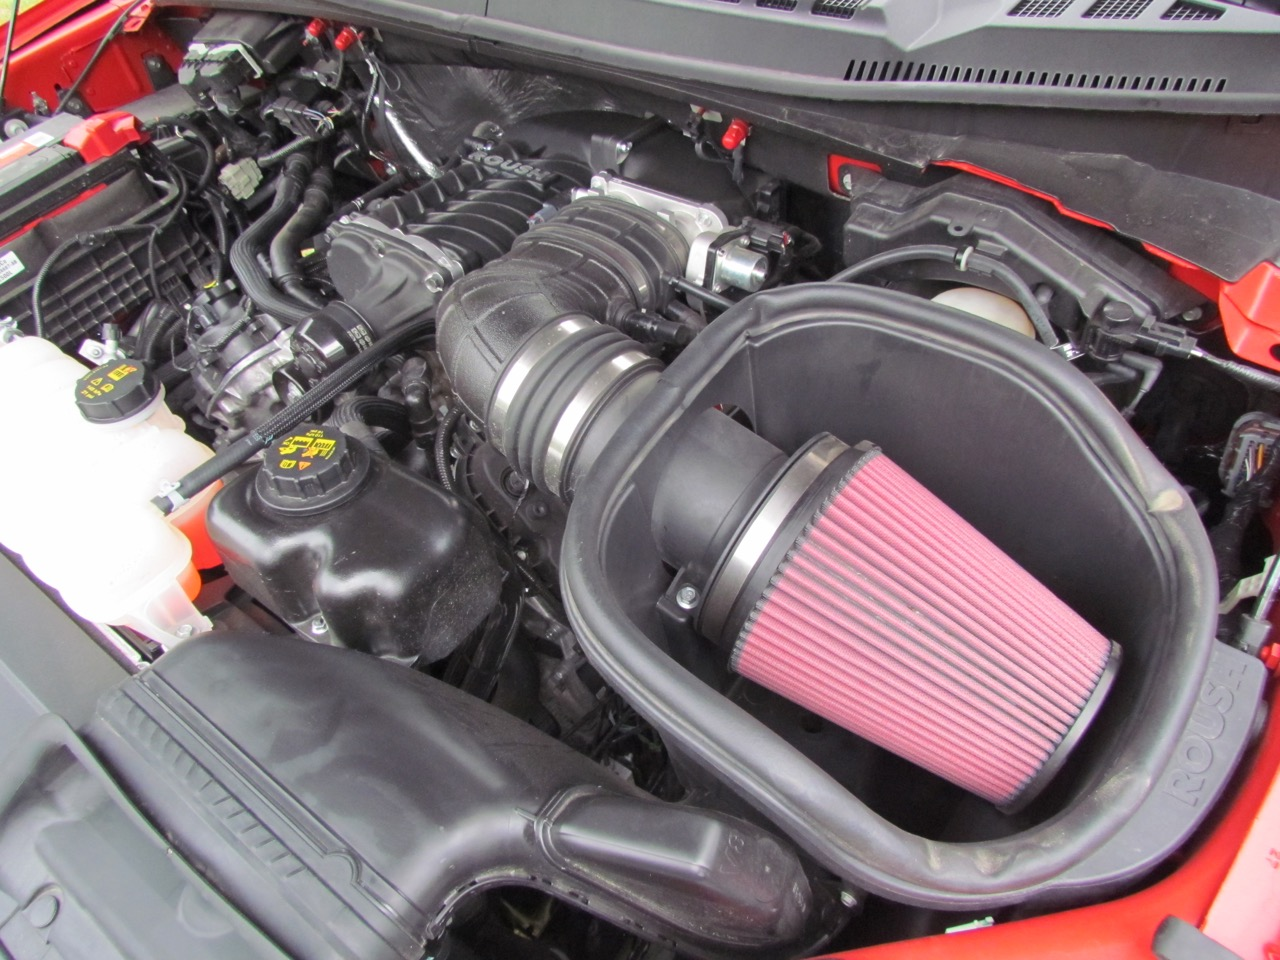 Cold-air intake, supercharger are part of the Roush SC package